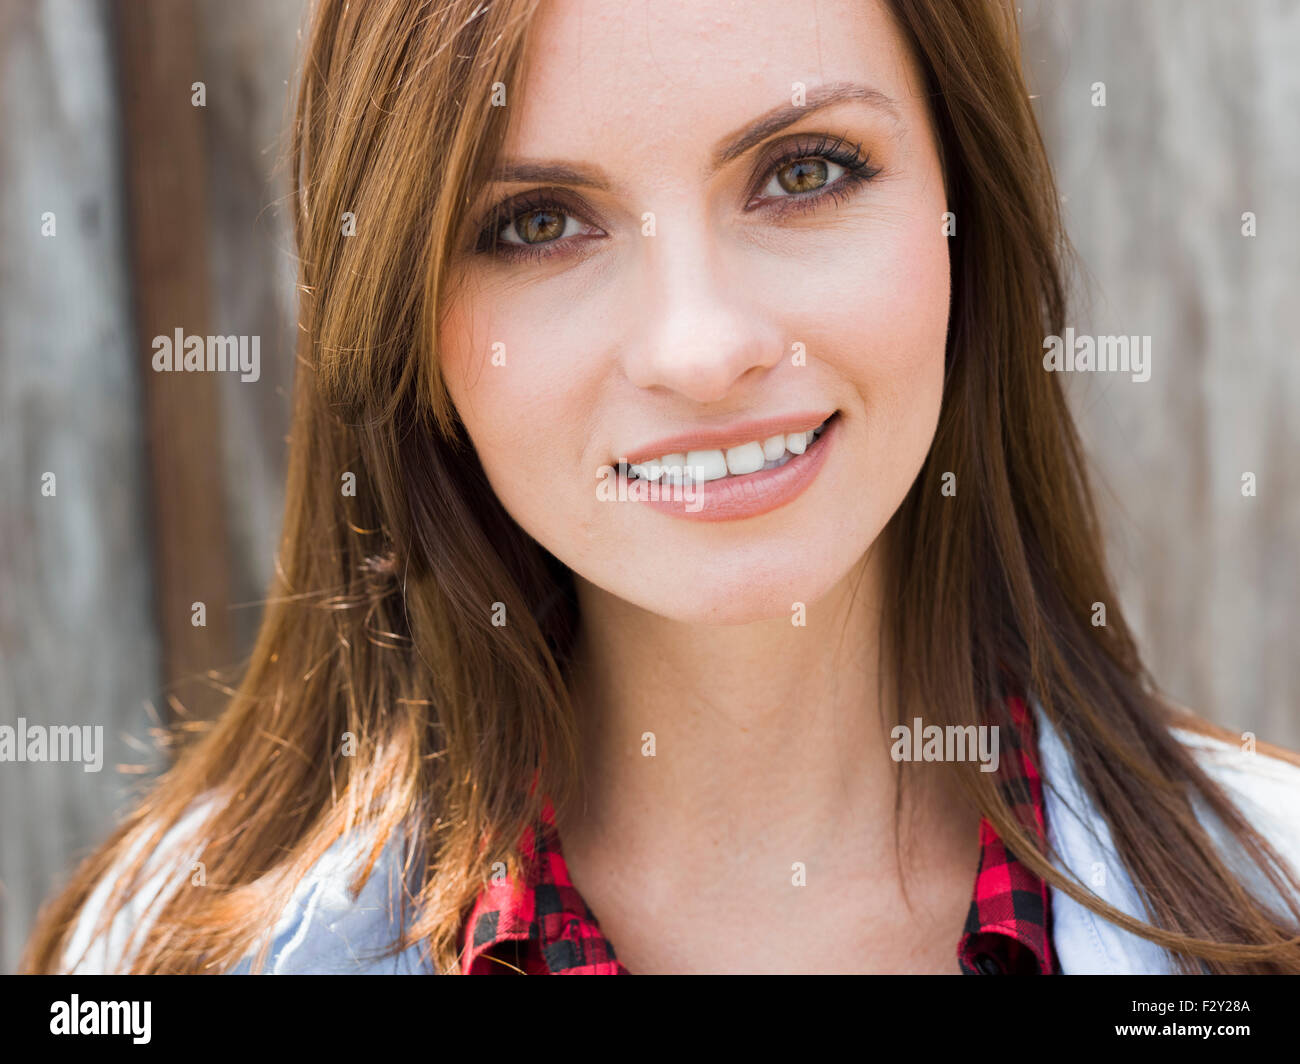 A beautiful woman with brown eyes and brown hair. - Stock Image